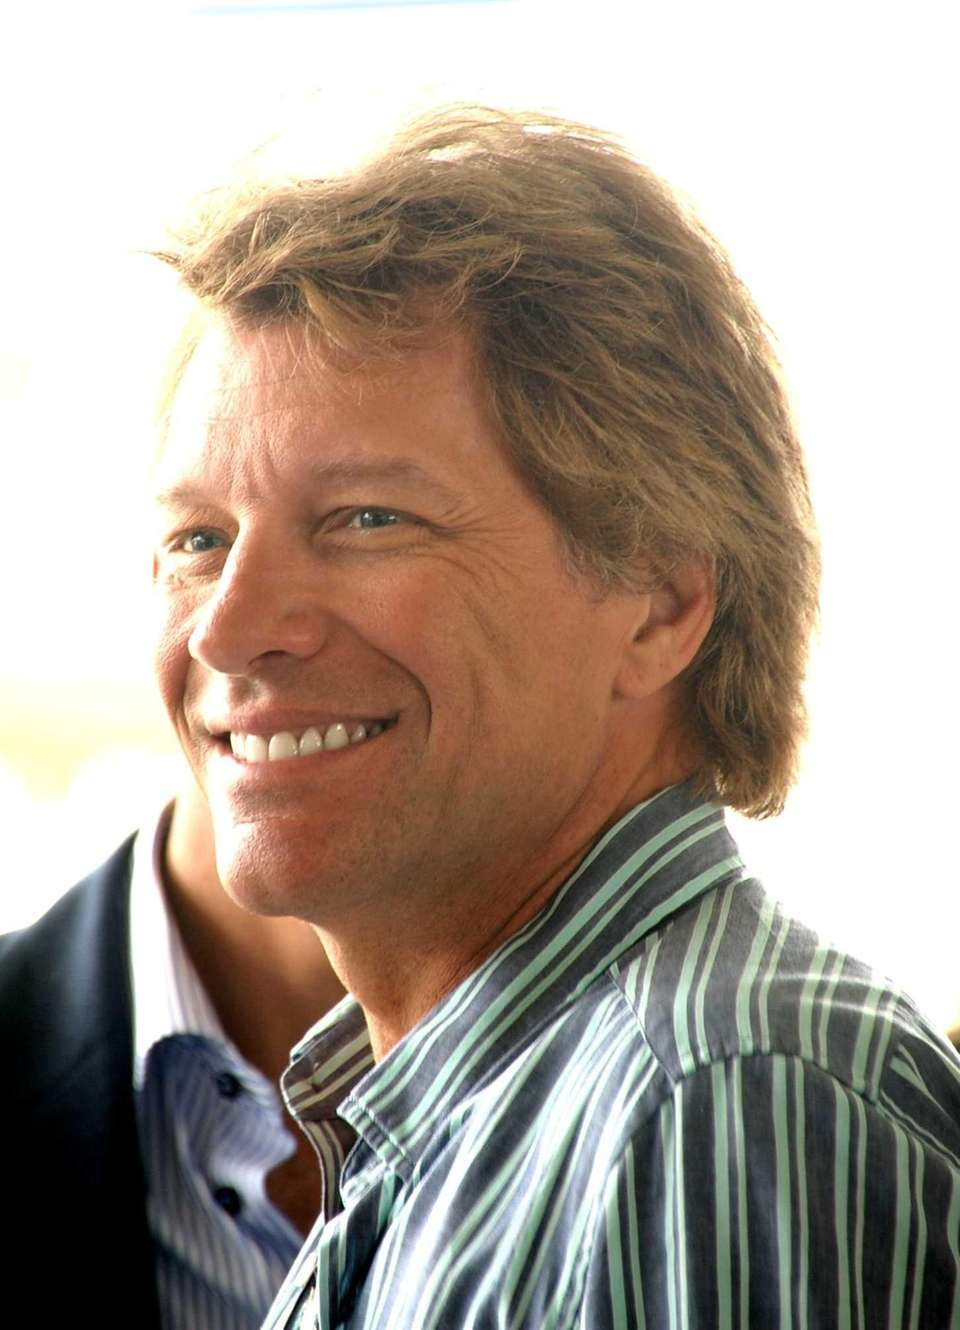 Jon Bon Jovi at the horse show in